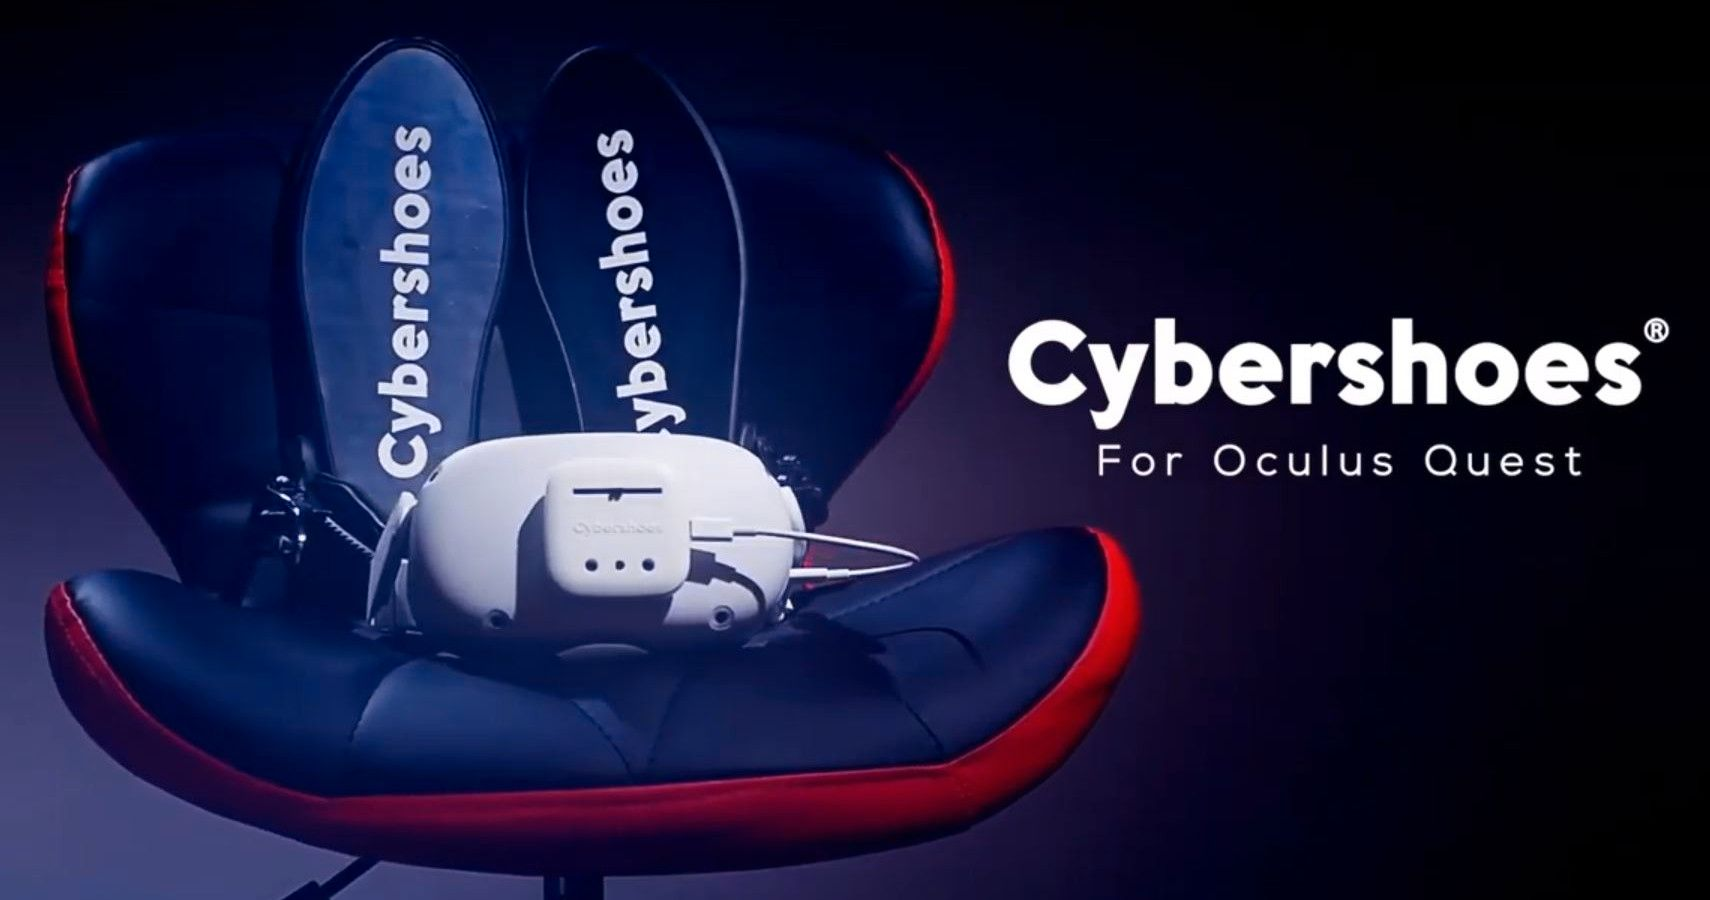 Cybershoes For Oculus Quest Review: Two Steps Forward, One Step Back